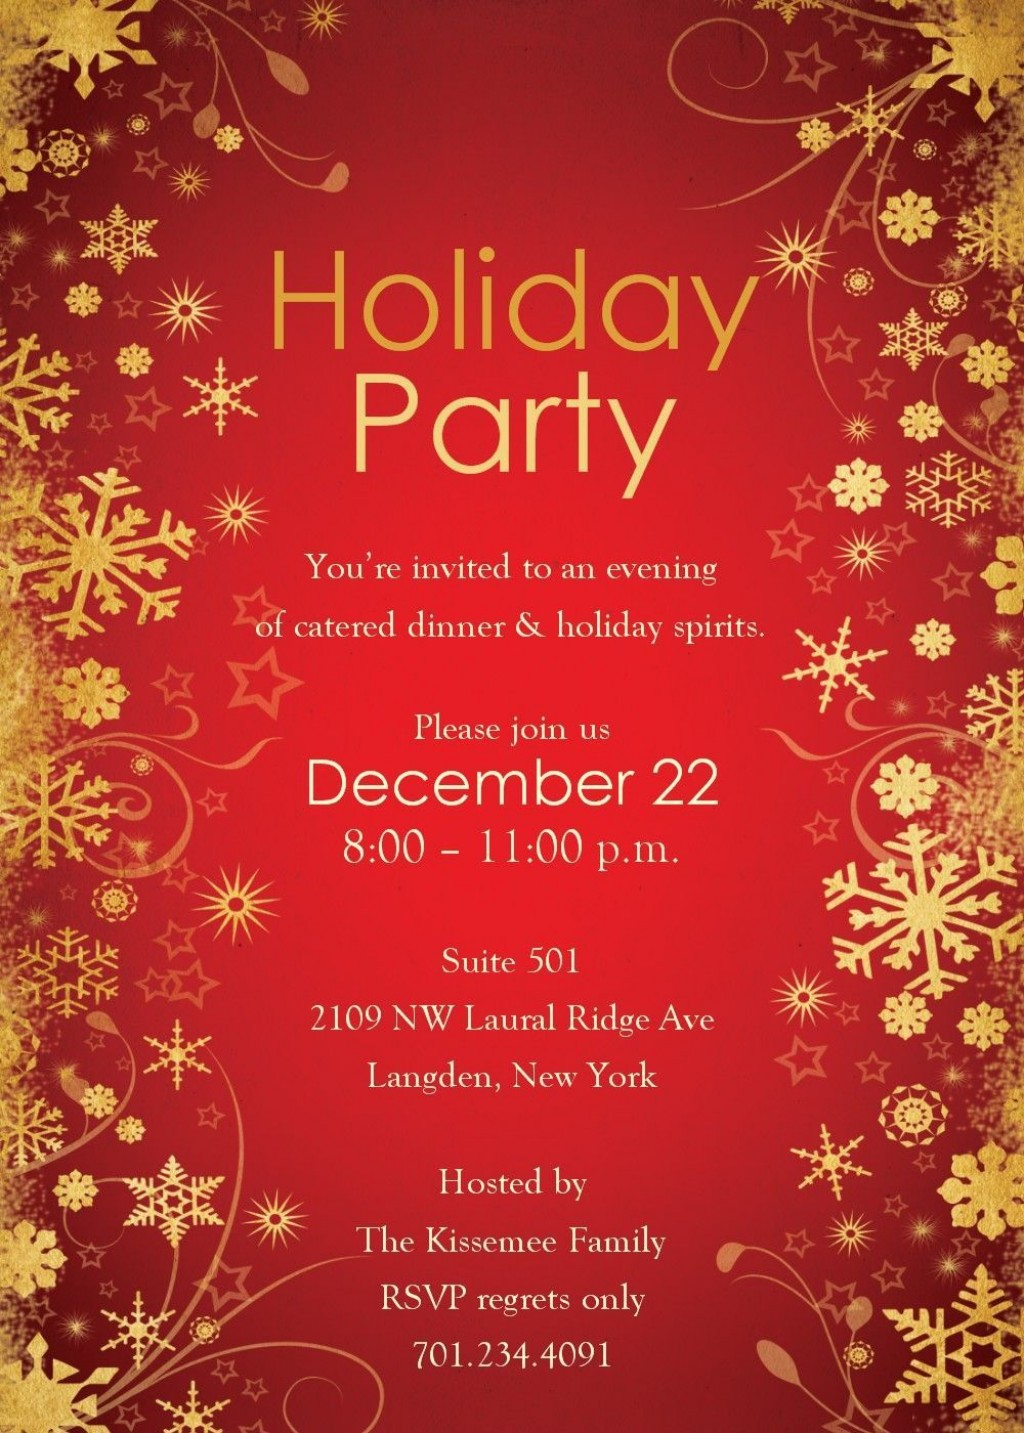 005 Unusual Xma Party Invite Template Free Highest Quality  Holiday Invitation Word Printable Office Christma DownloadLarge